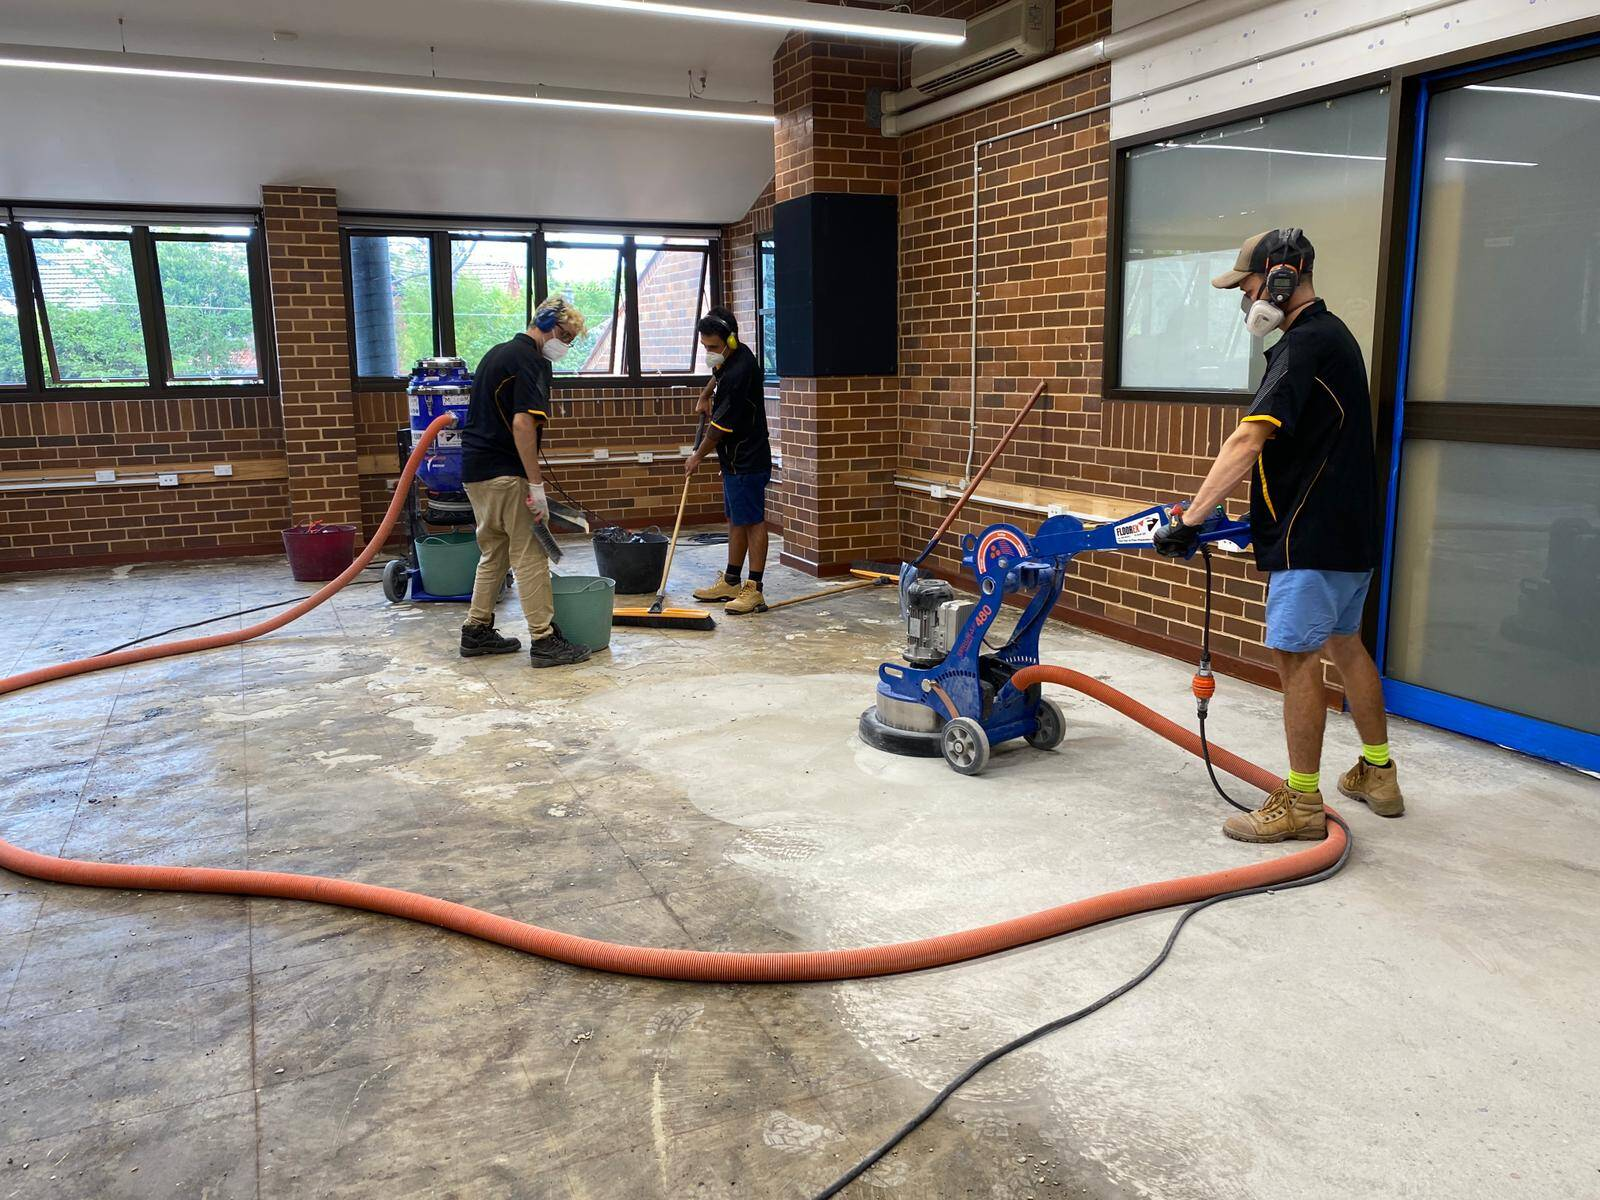 Reasonable Payments Of Floor Polishing In North Shore Sydney Services Come With Professional Work